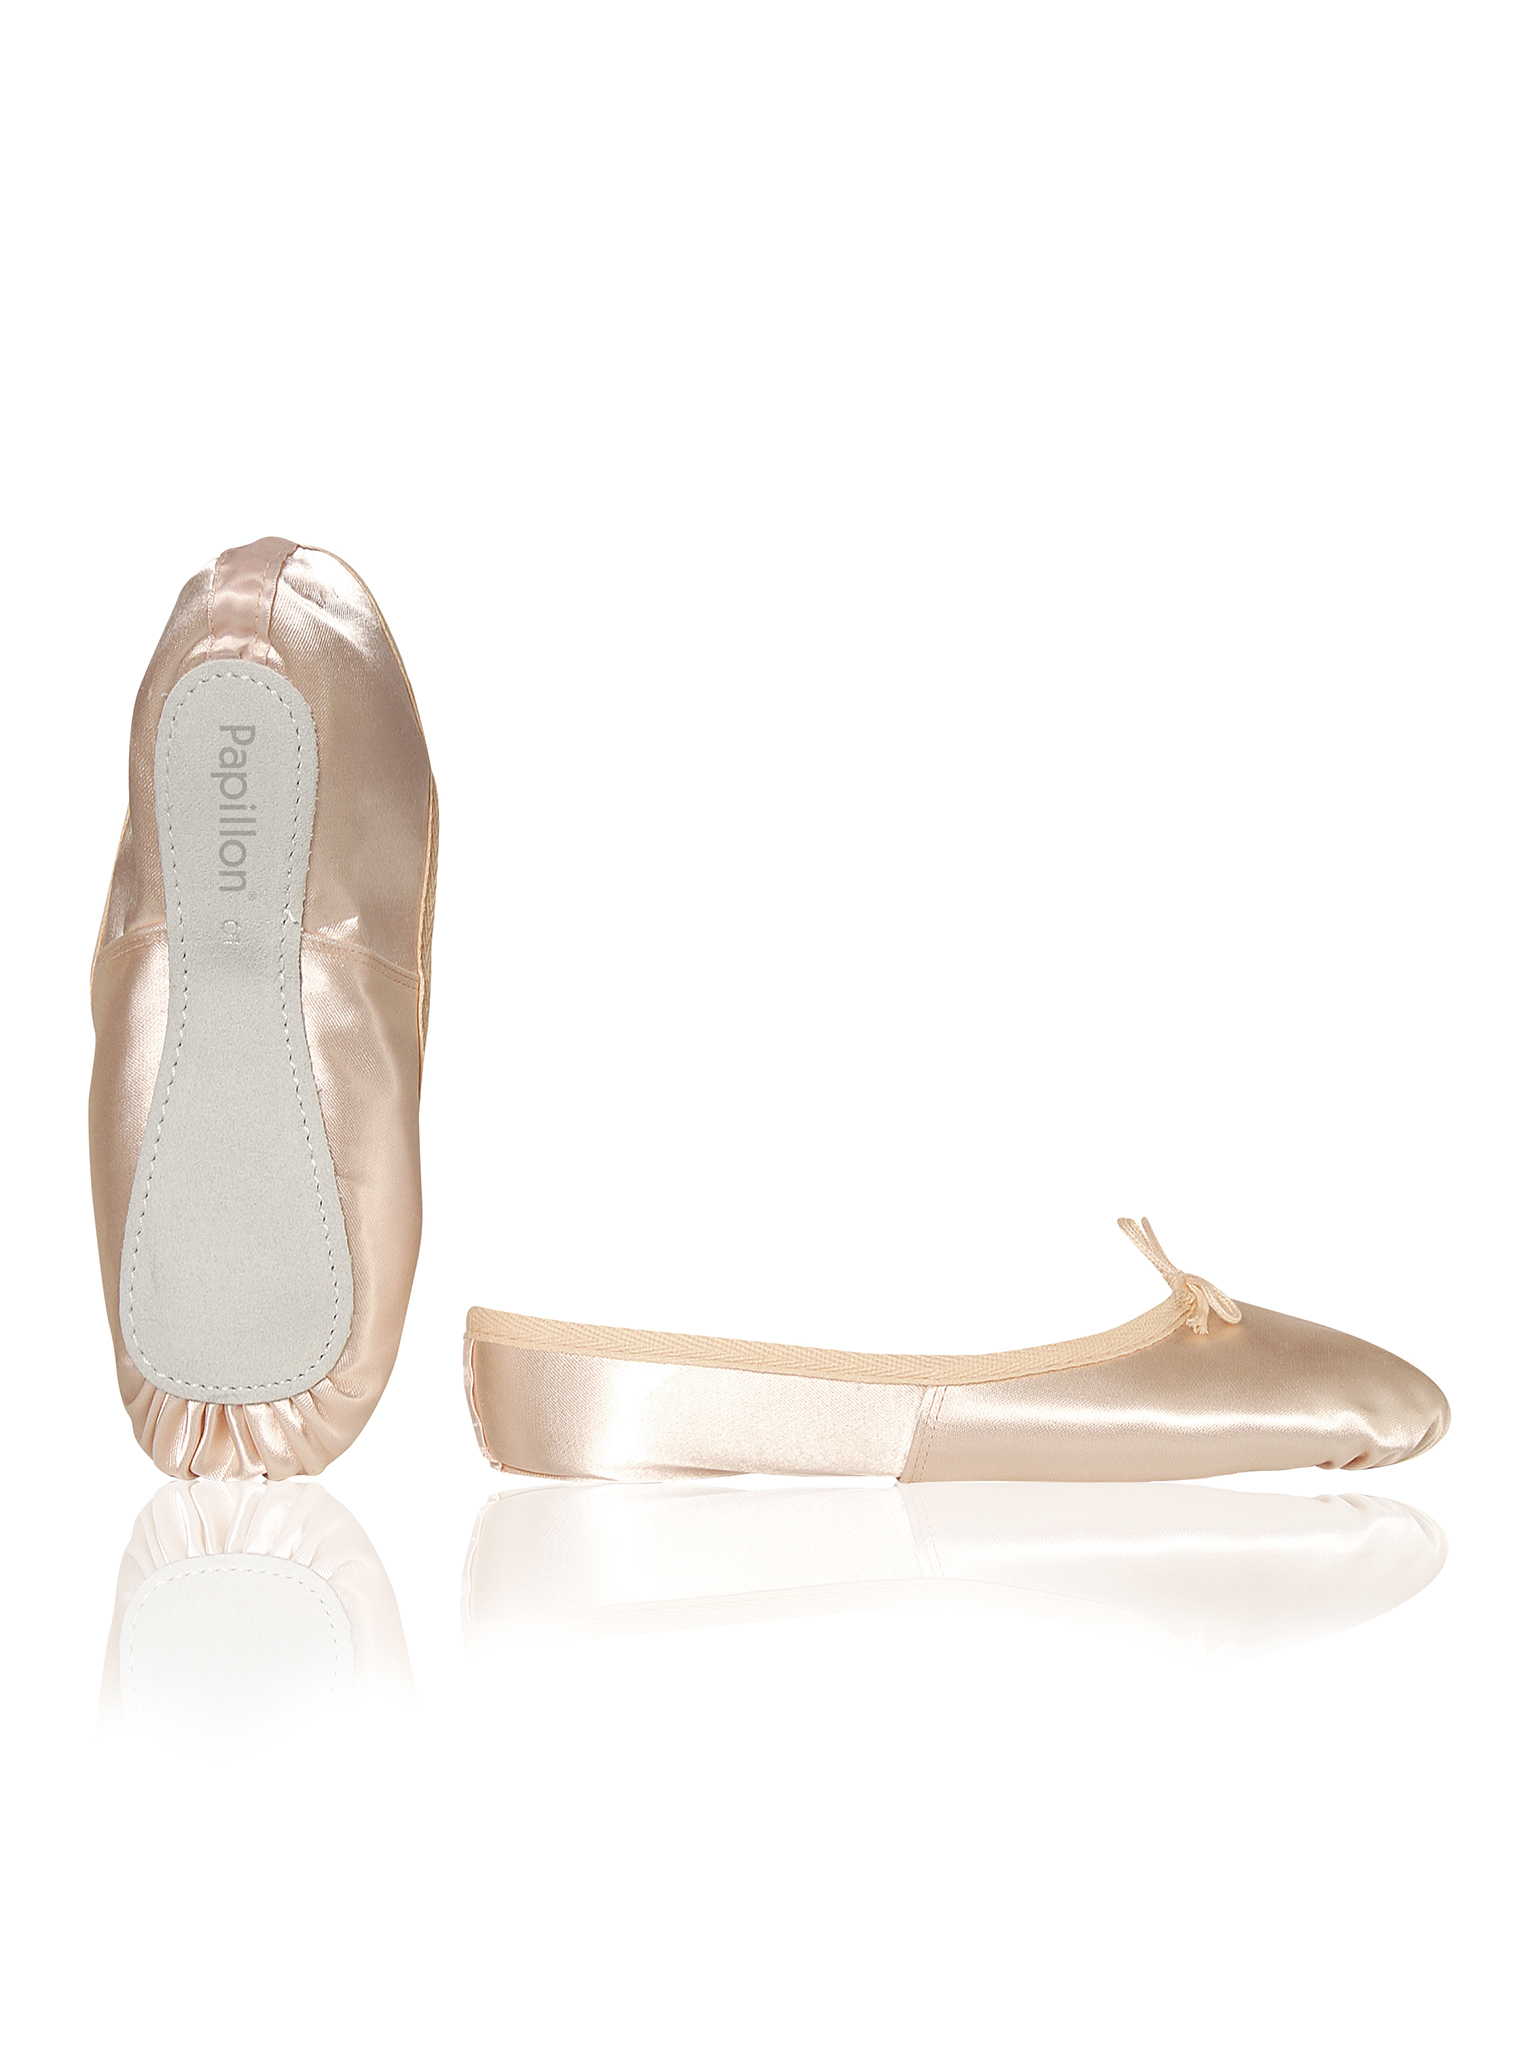 Image of   Papillon Ballet shoe Soft satin full sole Girls - Pink - 105K